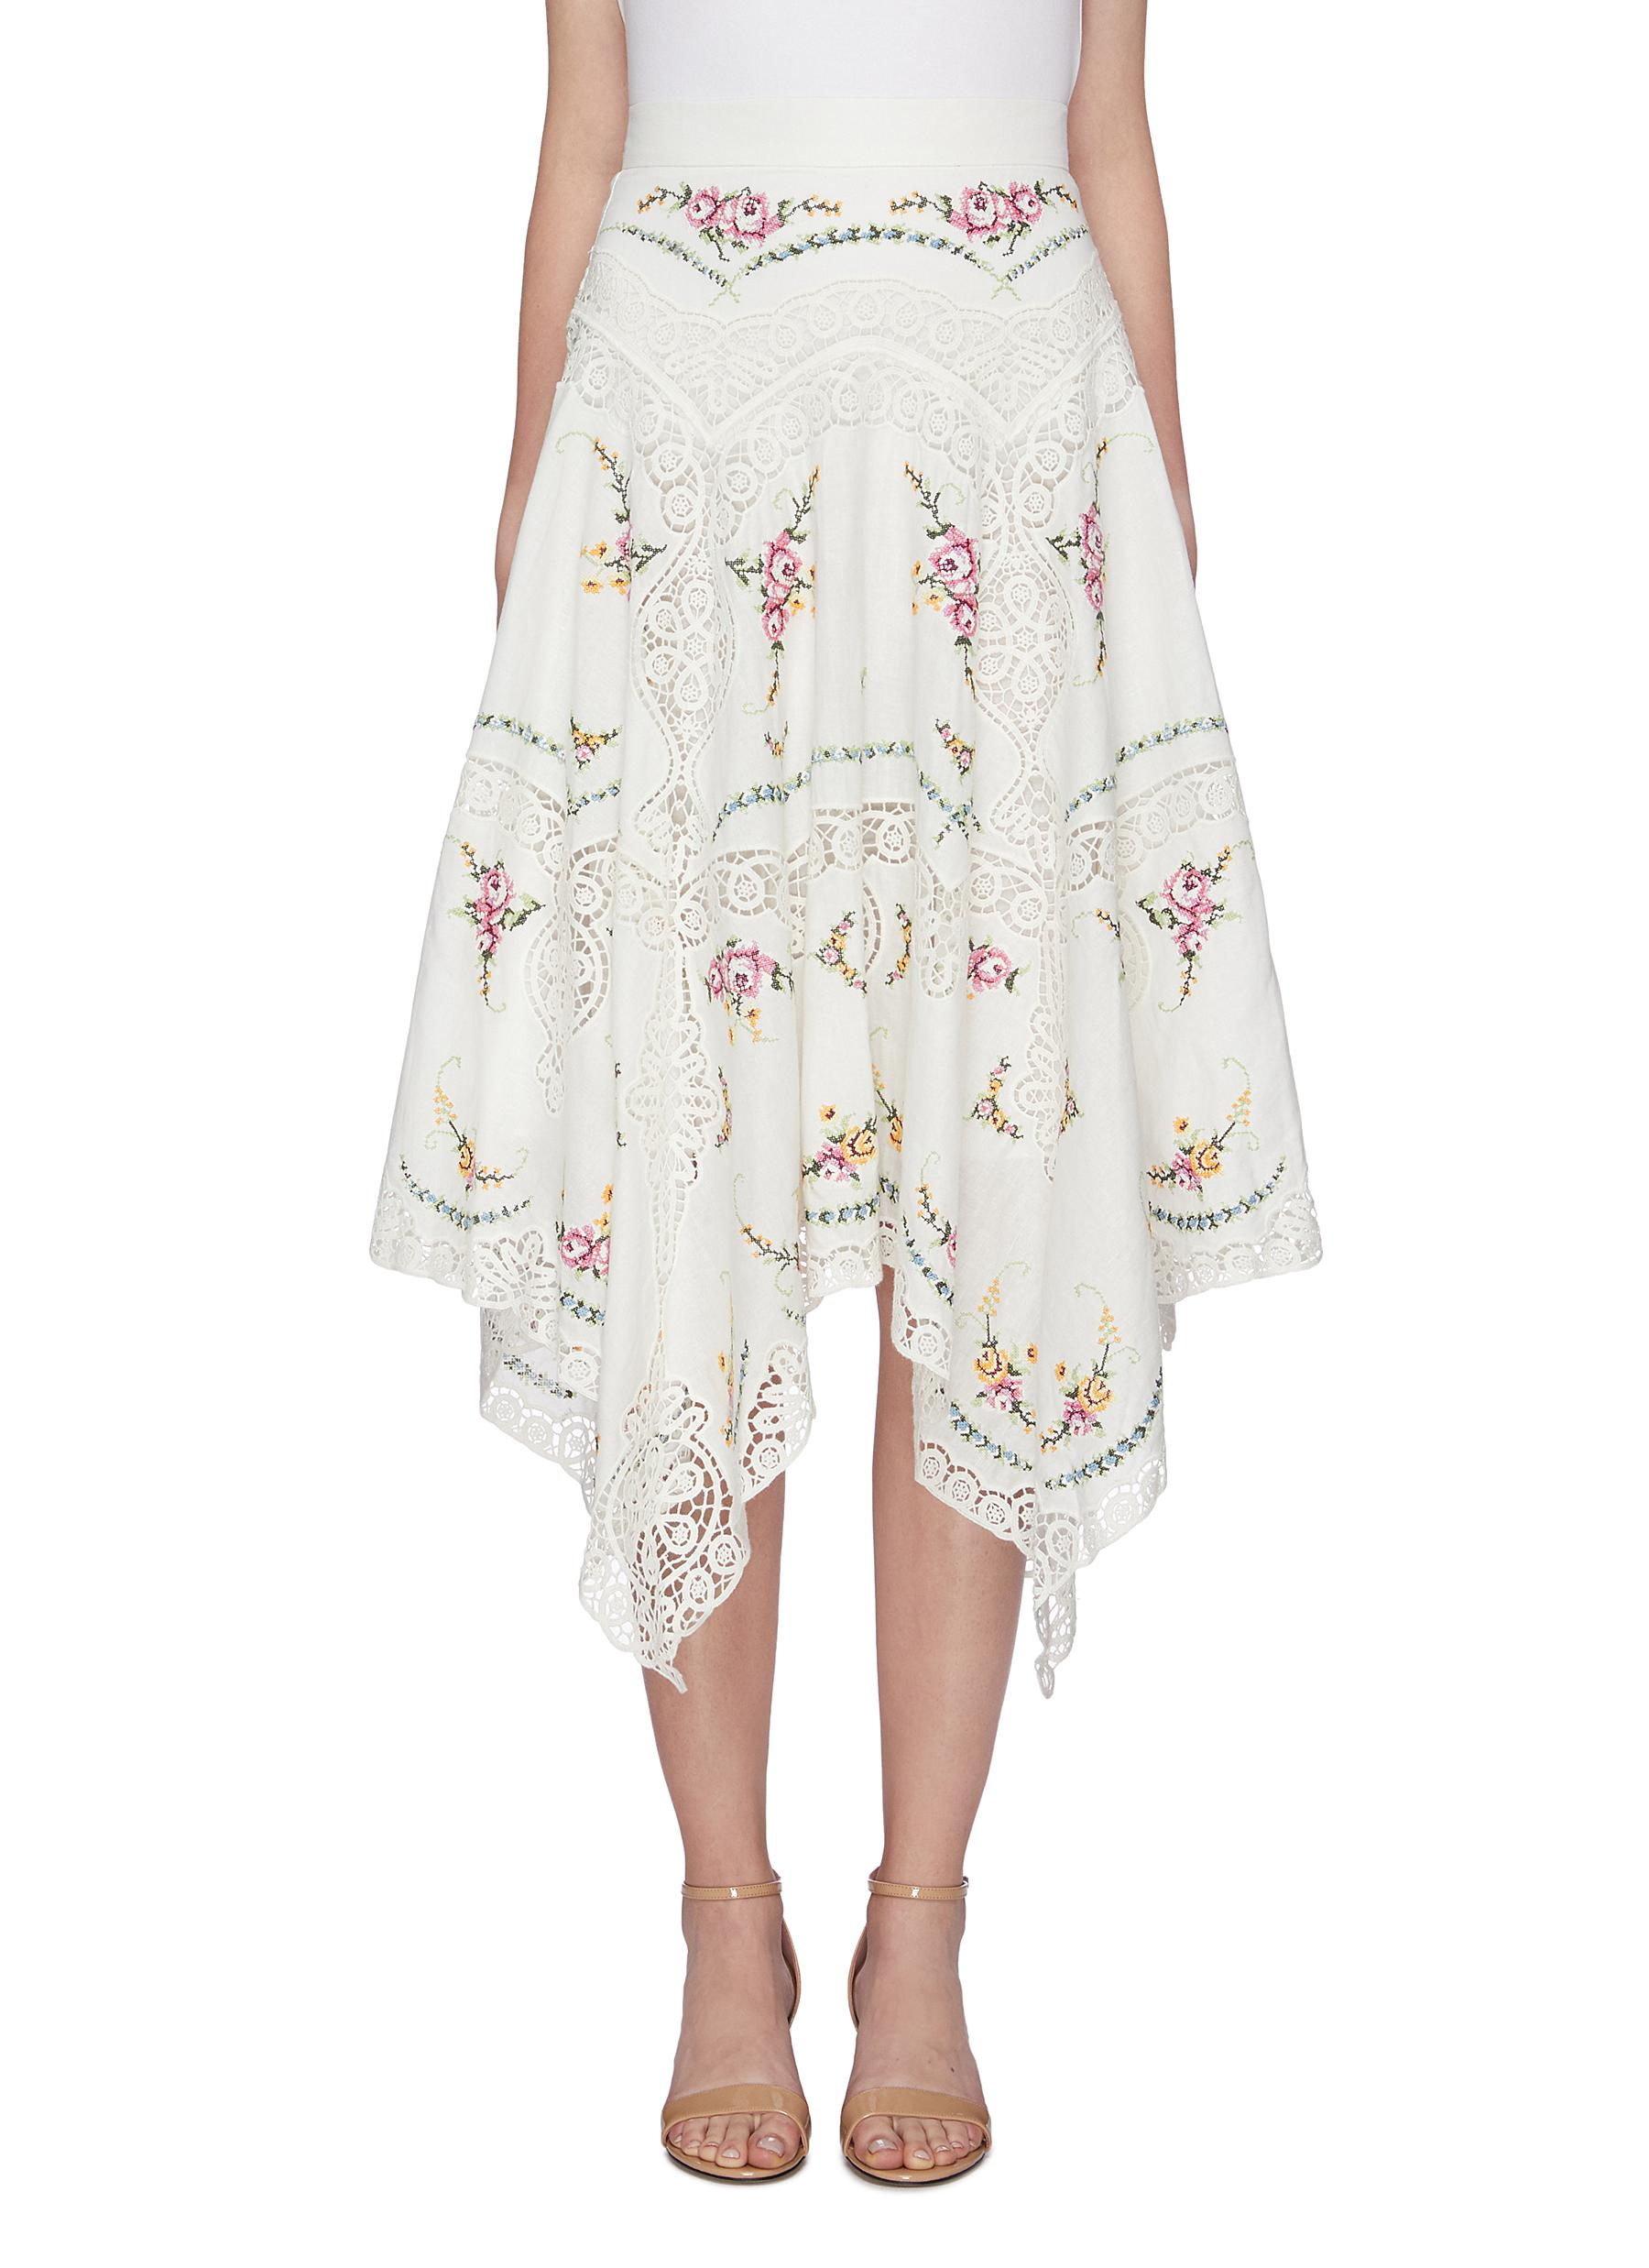 Allia crochet lace trim floral embroidered handkerchief skirt by Zimmermann